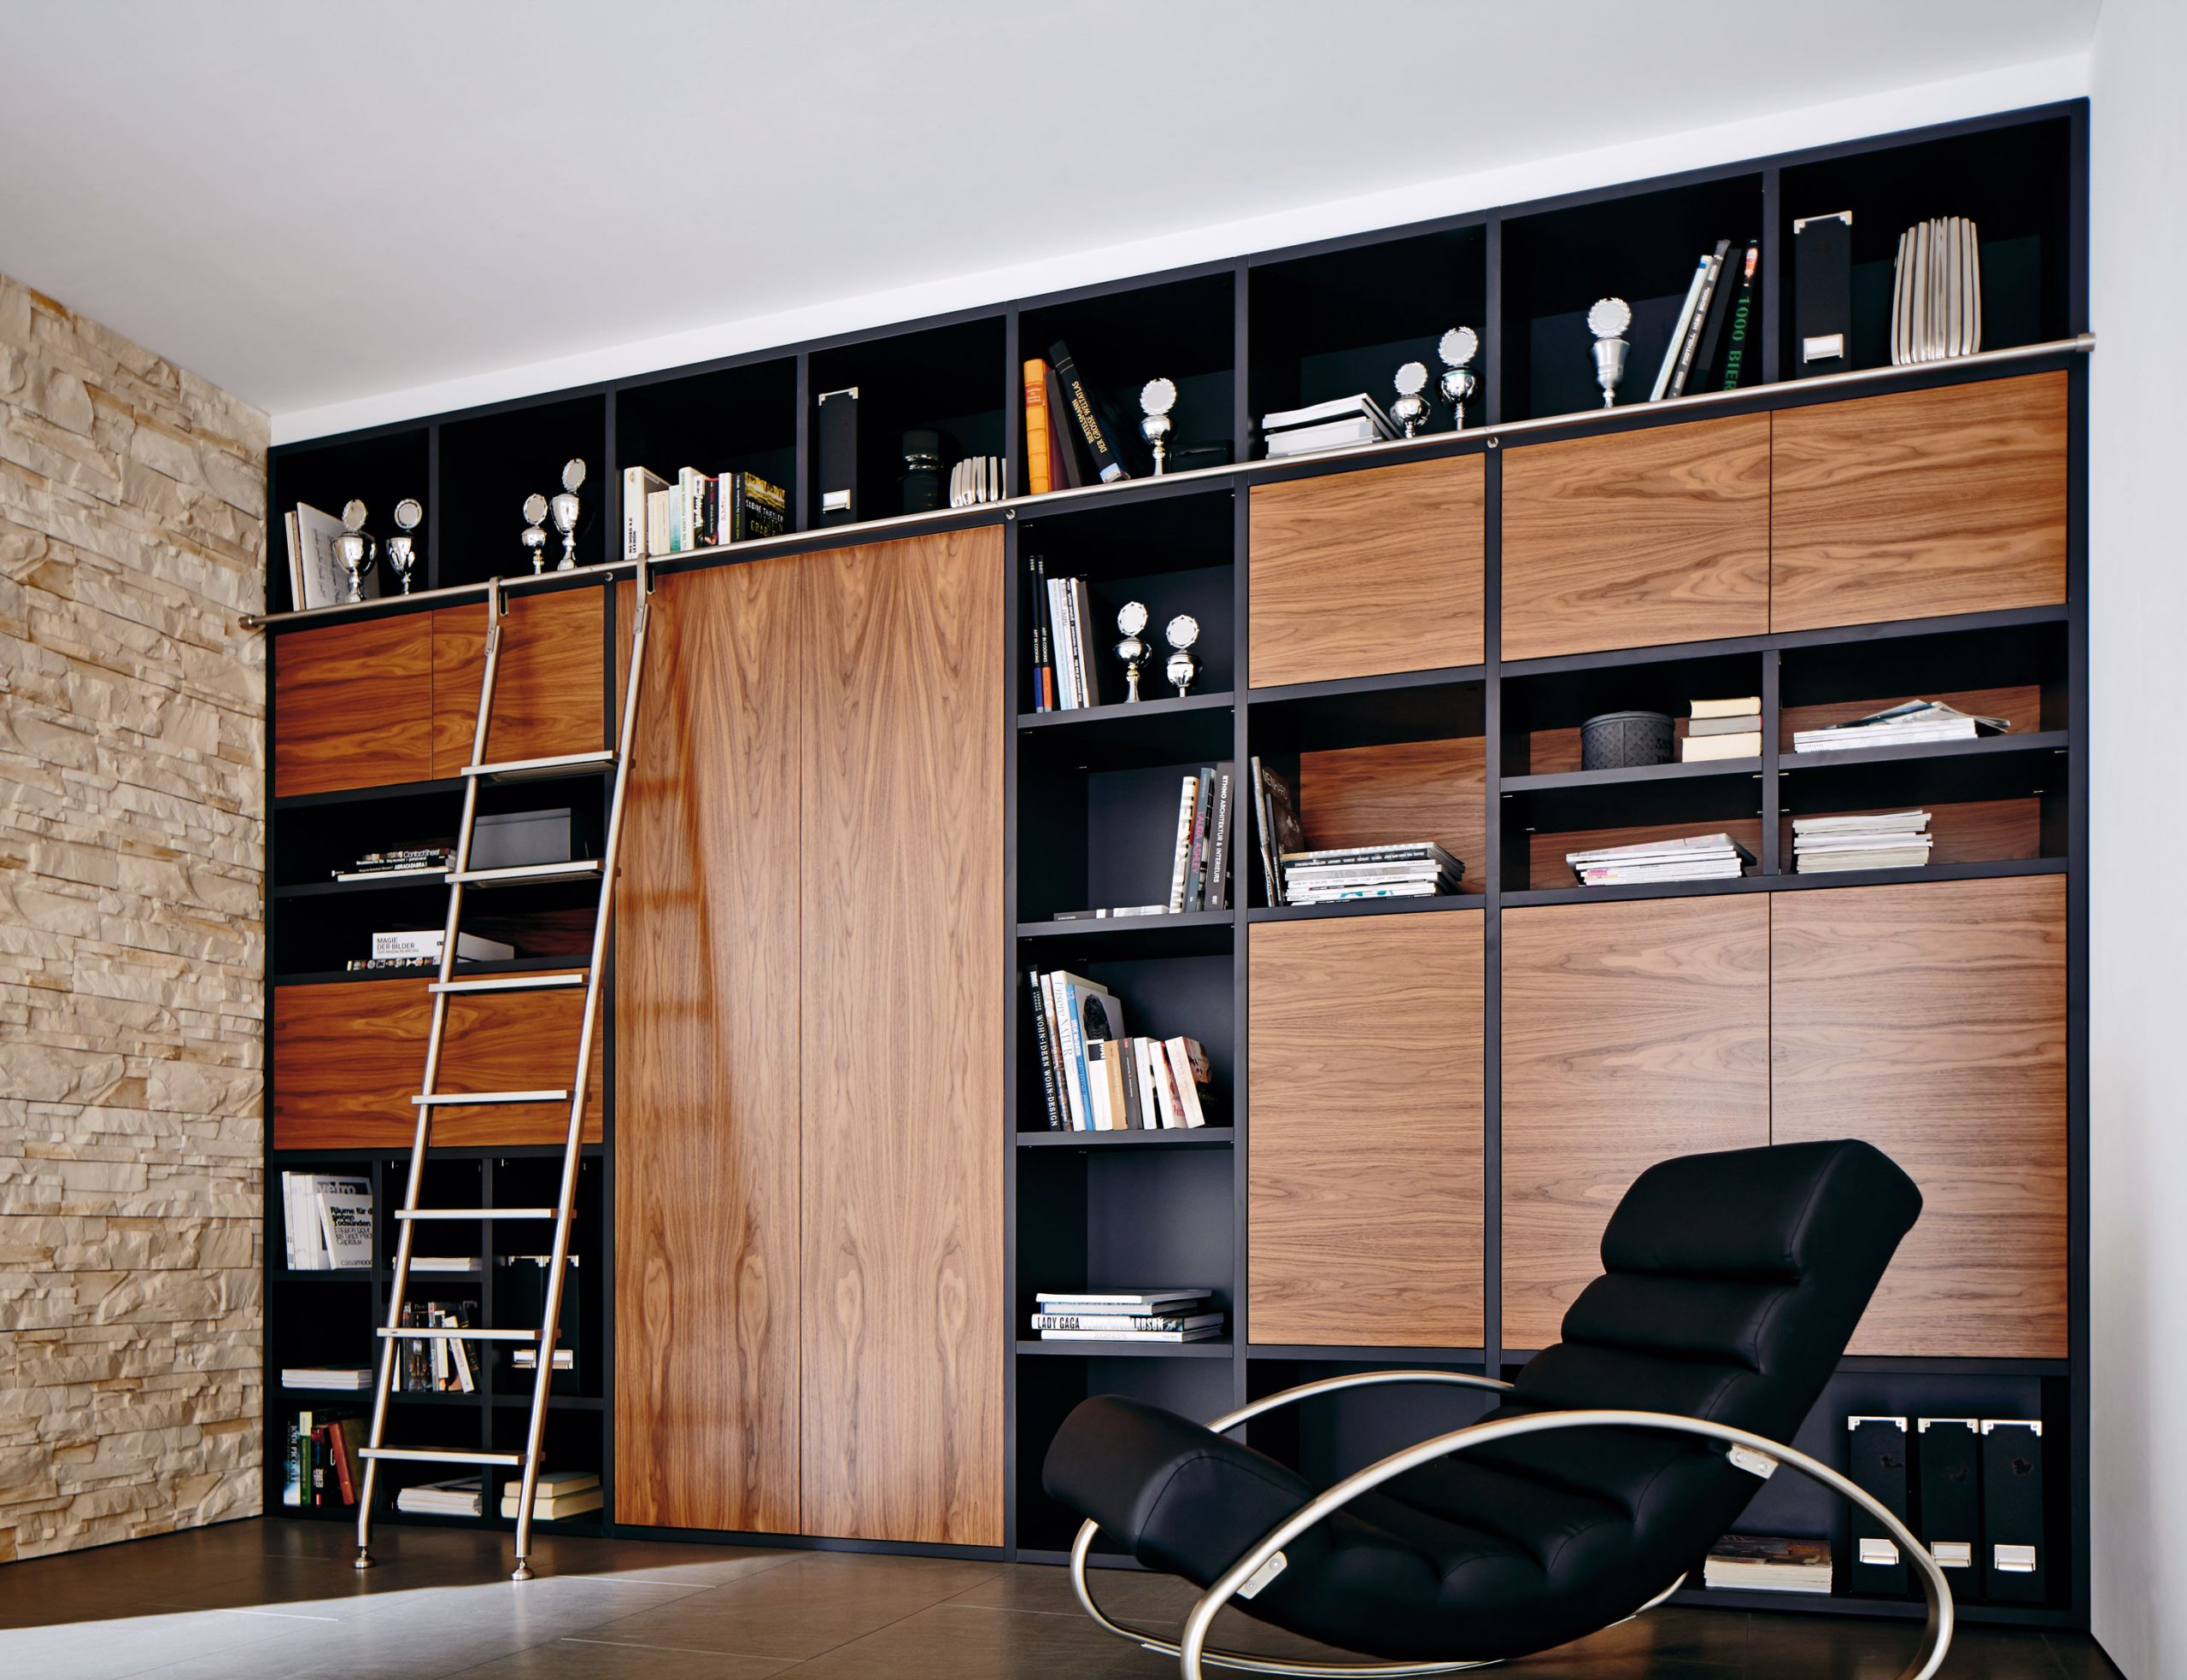 Valuable shelving systems provide perfect storage space